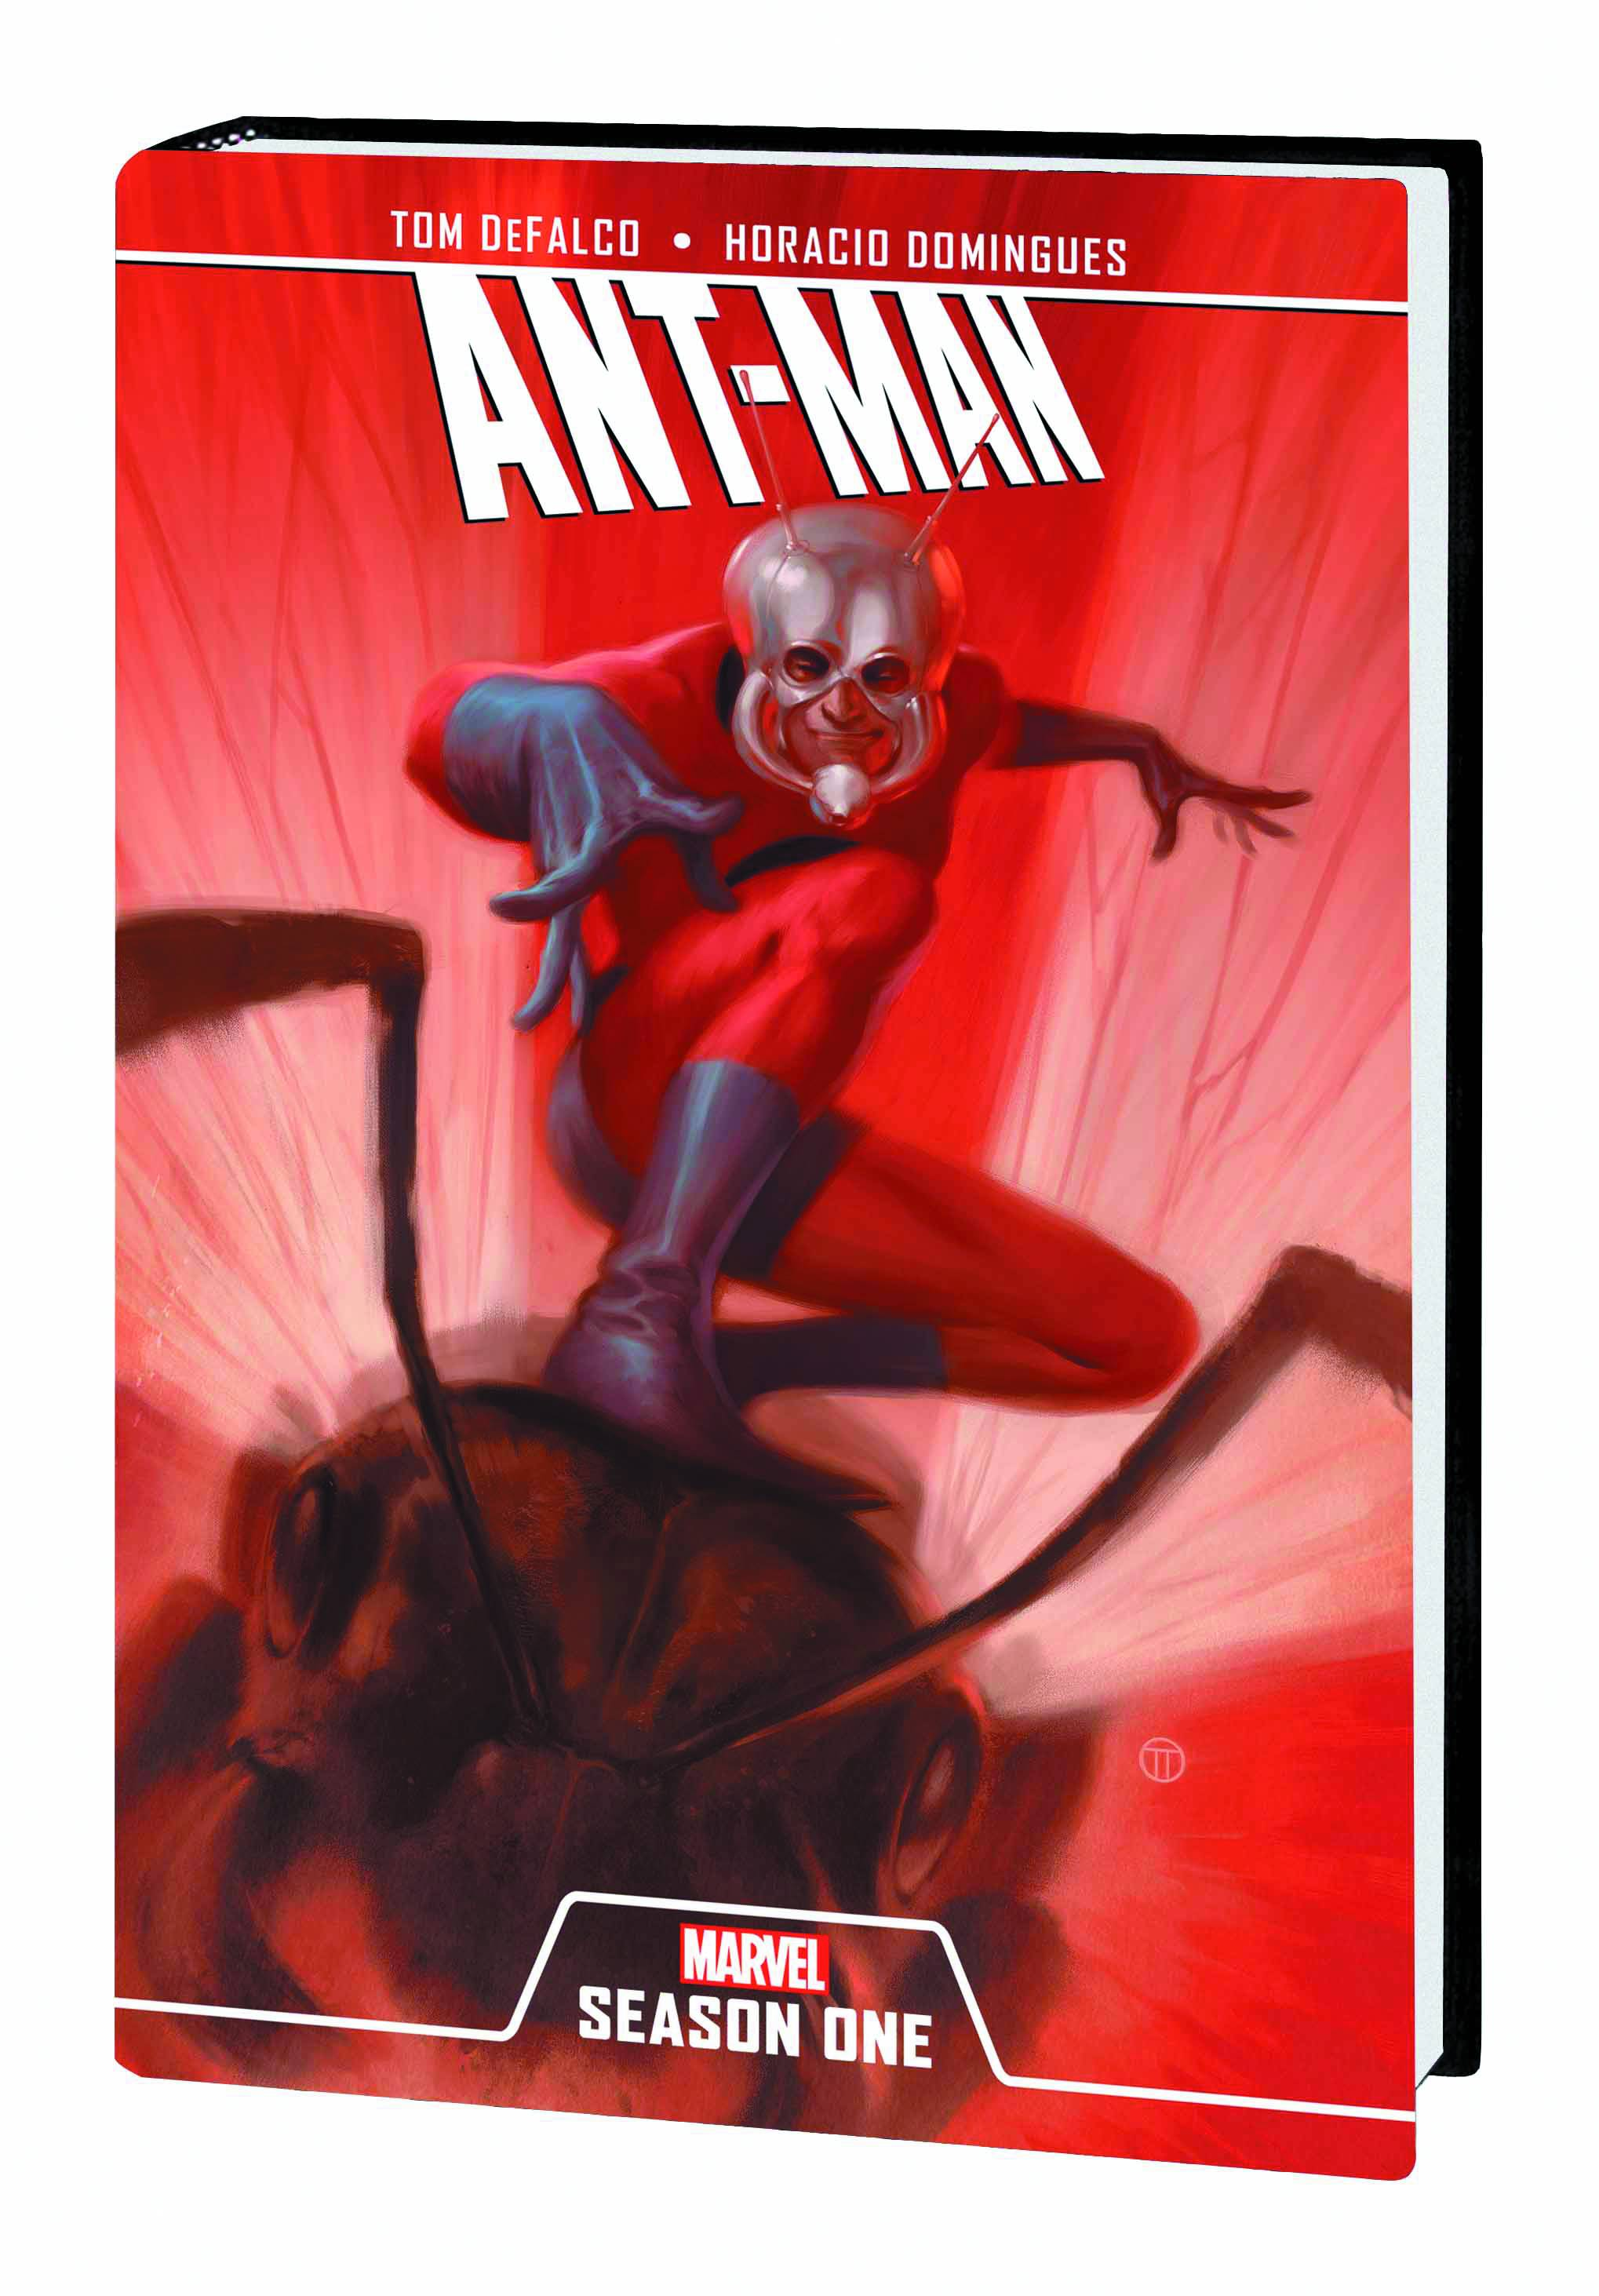 ANT-MAN SEASON ONE PREM HC 2012